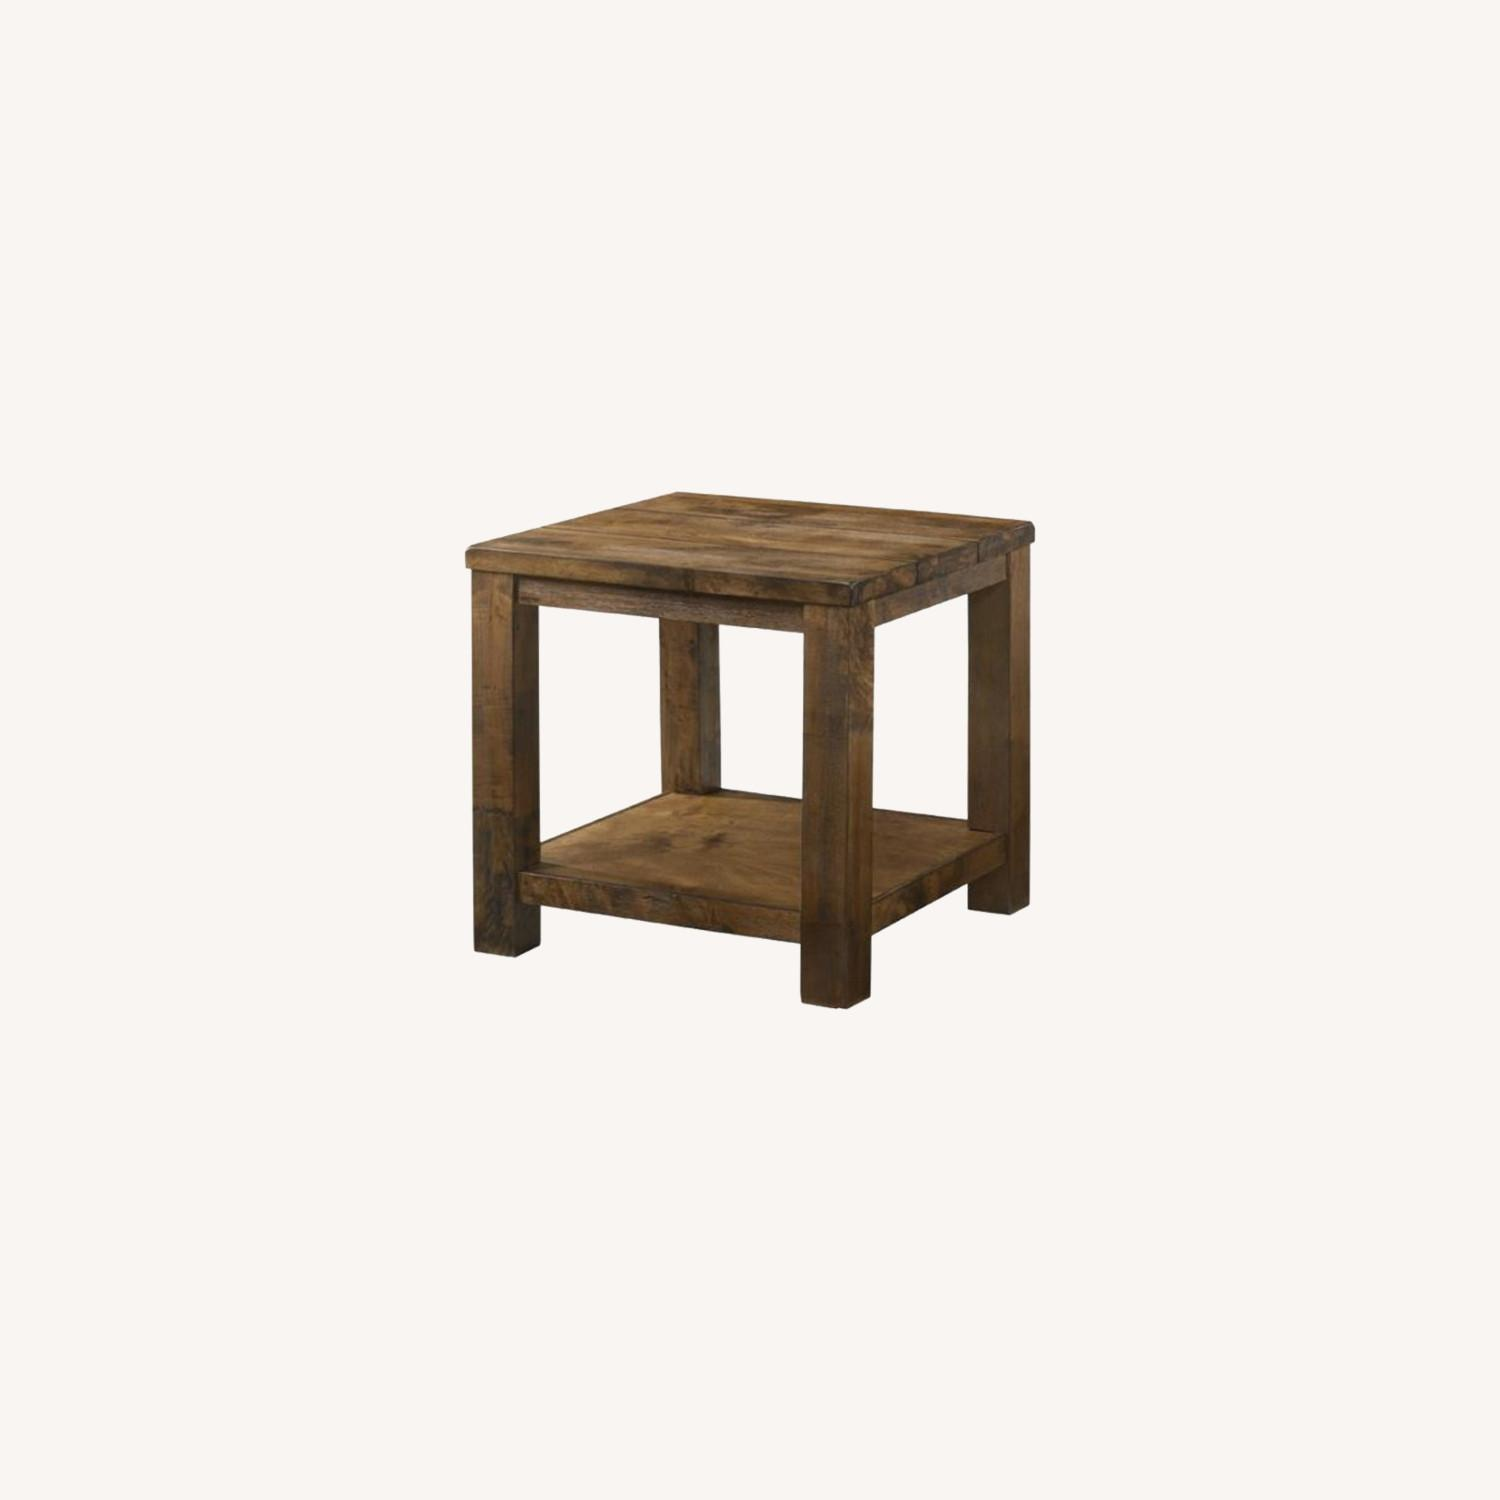 End Table In Rustic Golden Brown Wood - image-3